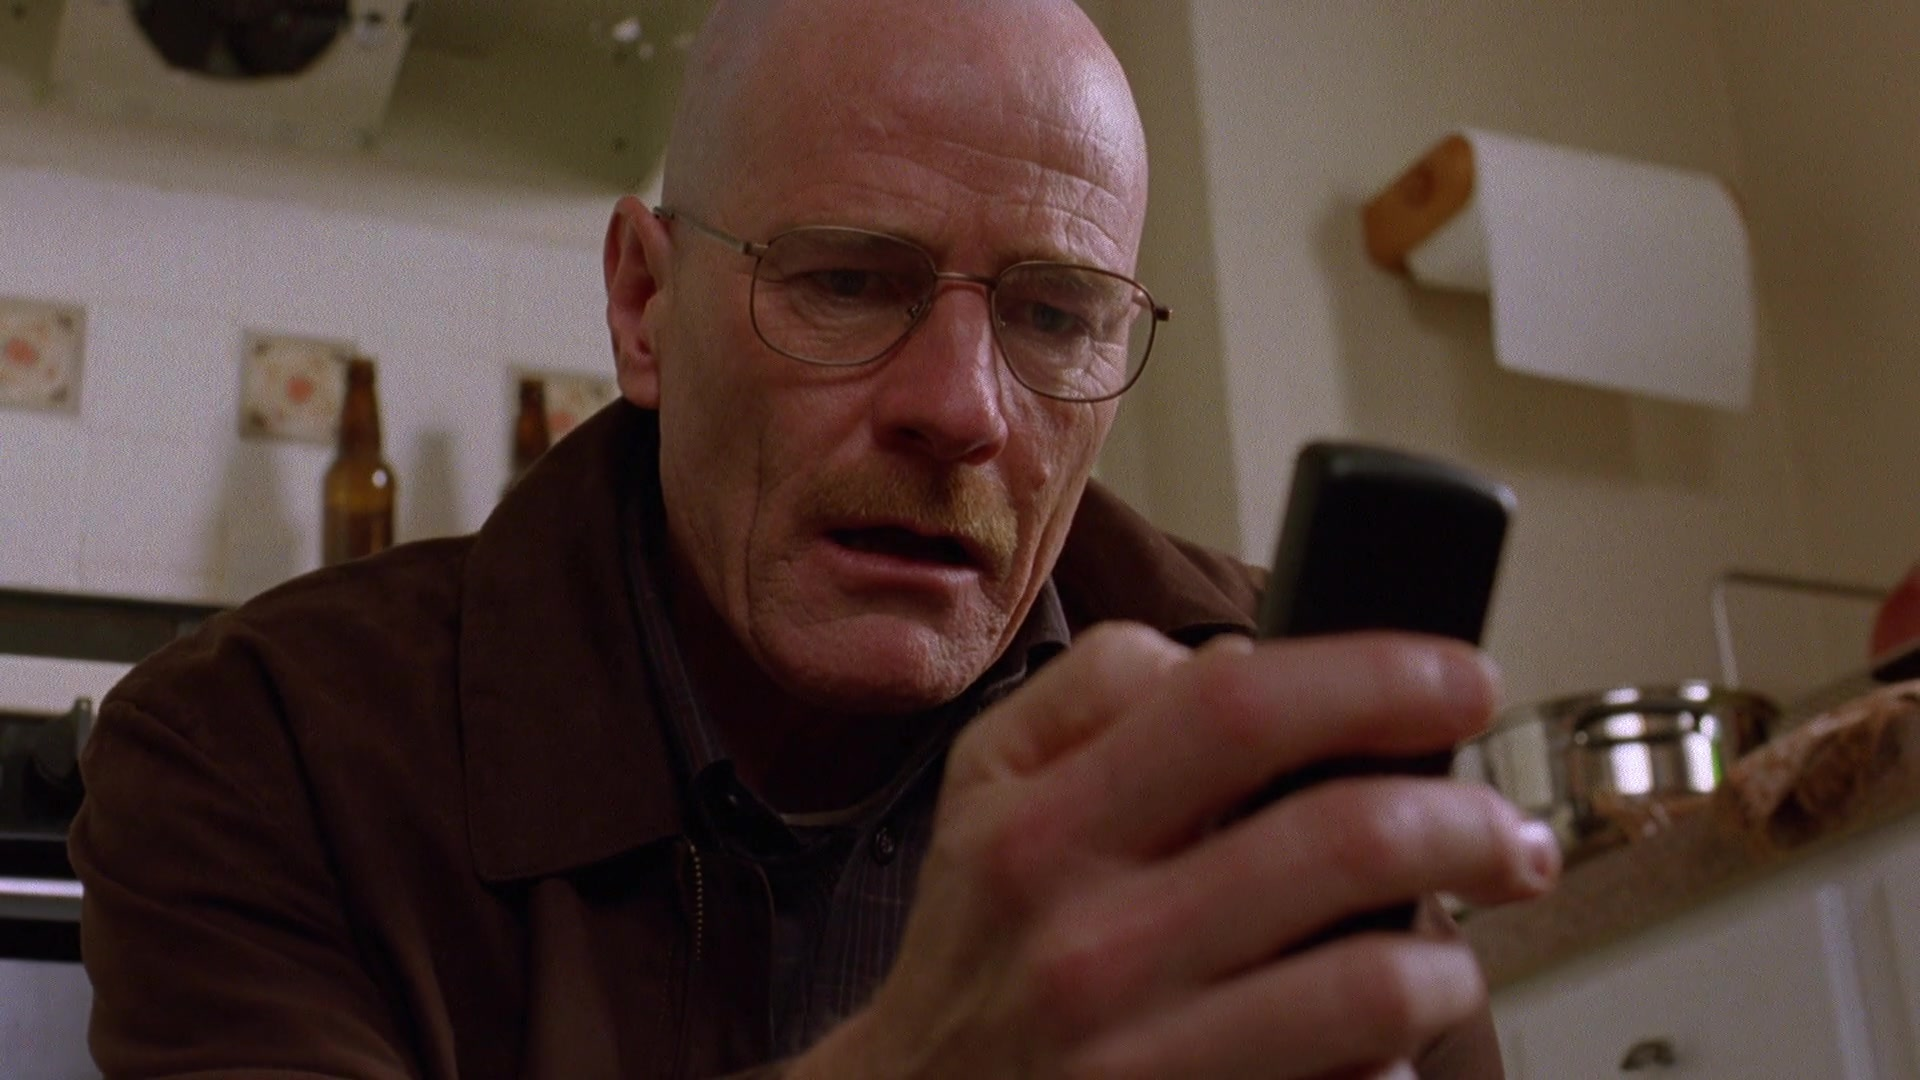 How To Not Dress For Middle Age: Walter White |Walter White Season 3